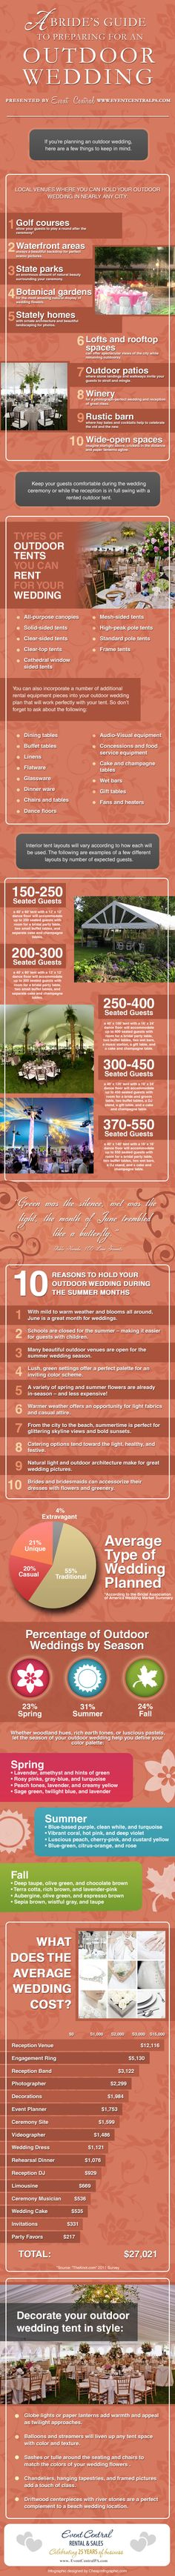 A Bride's Guide to an Outdoor Wedding (infographic)